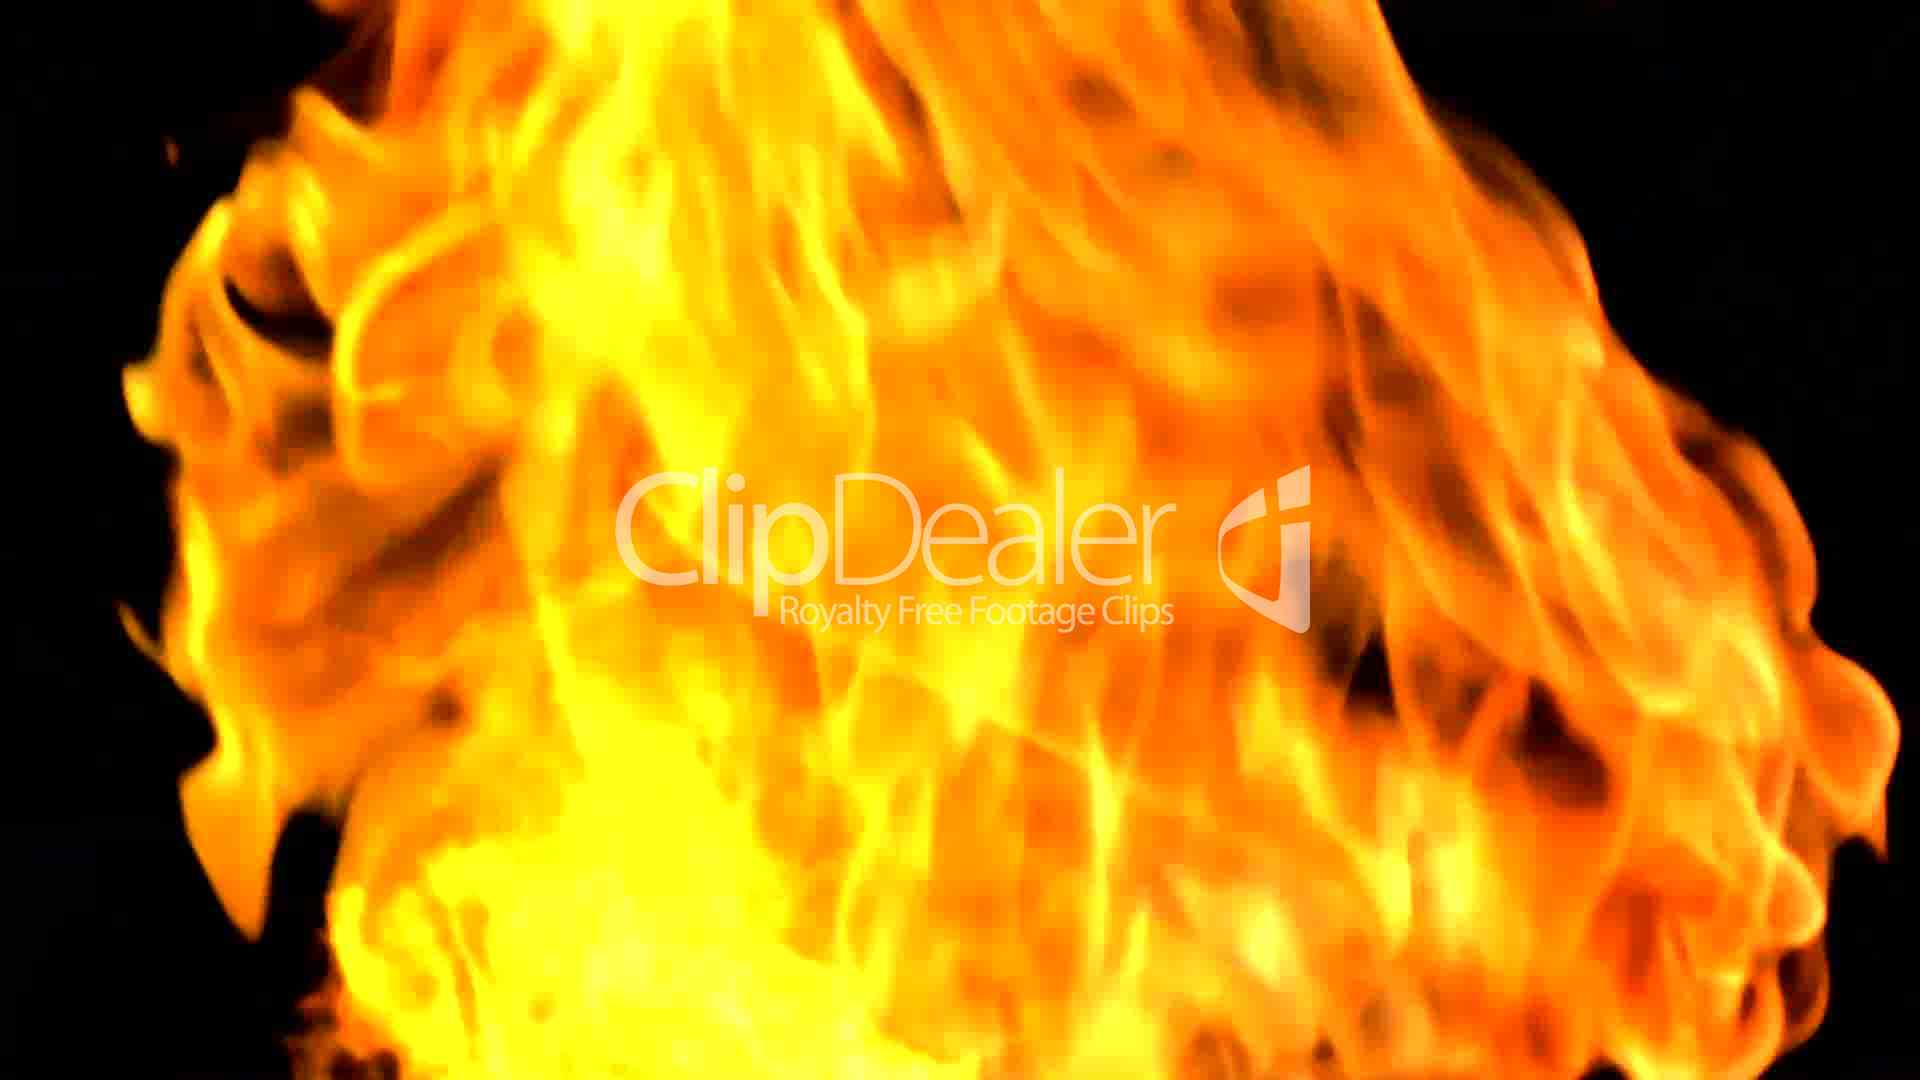 3 Fire Animation 3 Royalty-Free Video And Stock Footage-5591